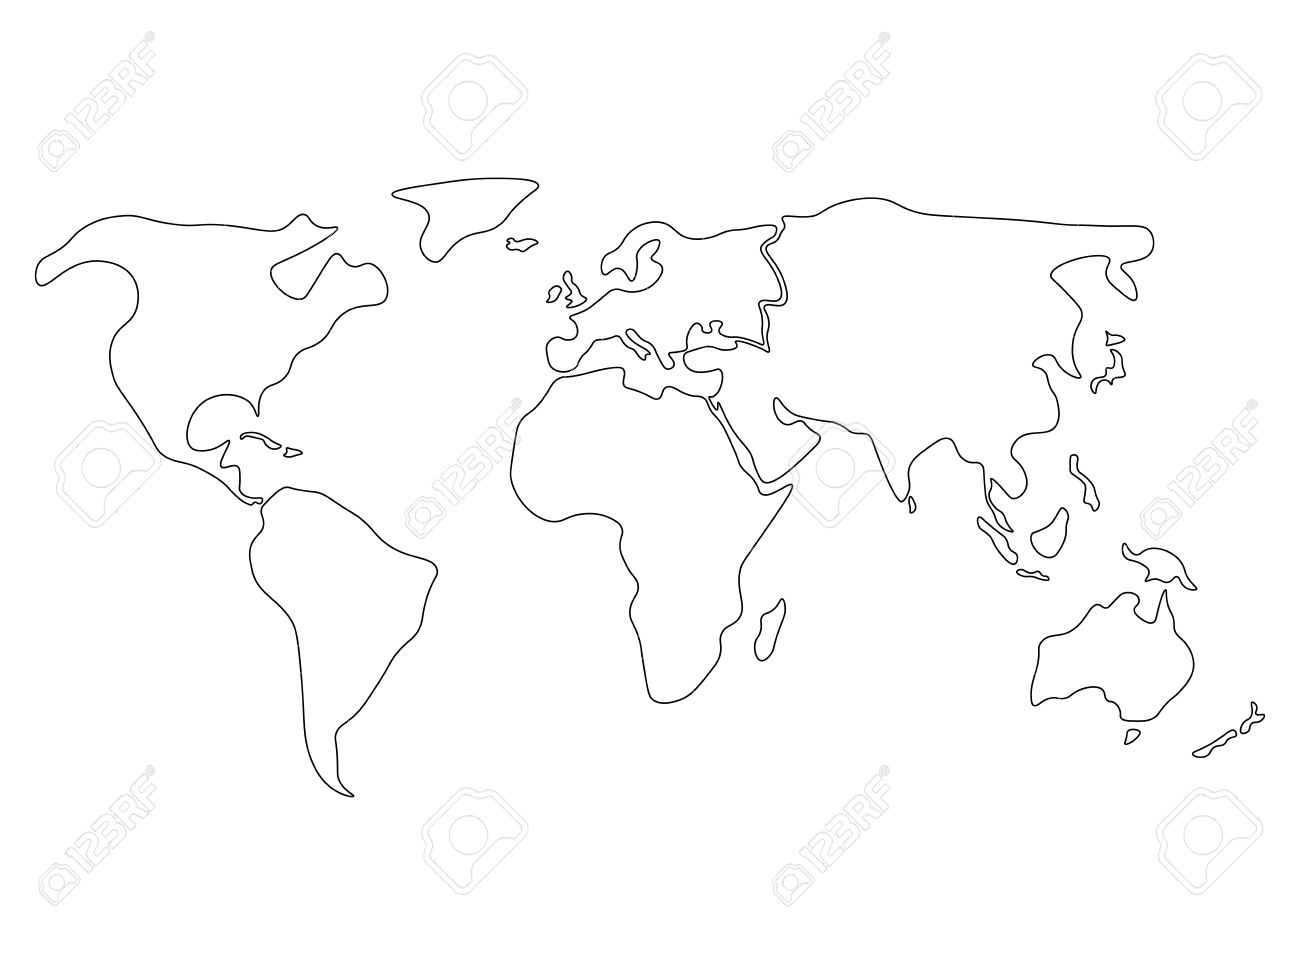 Blank Map Of Europe And North America  Printable Editable Blank - Map of north america and europe